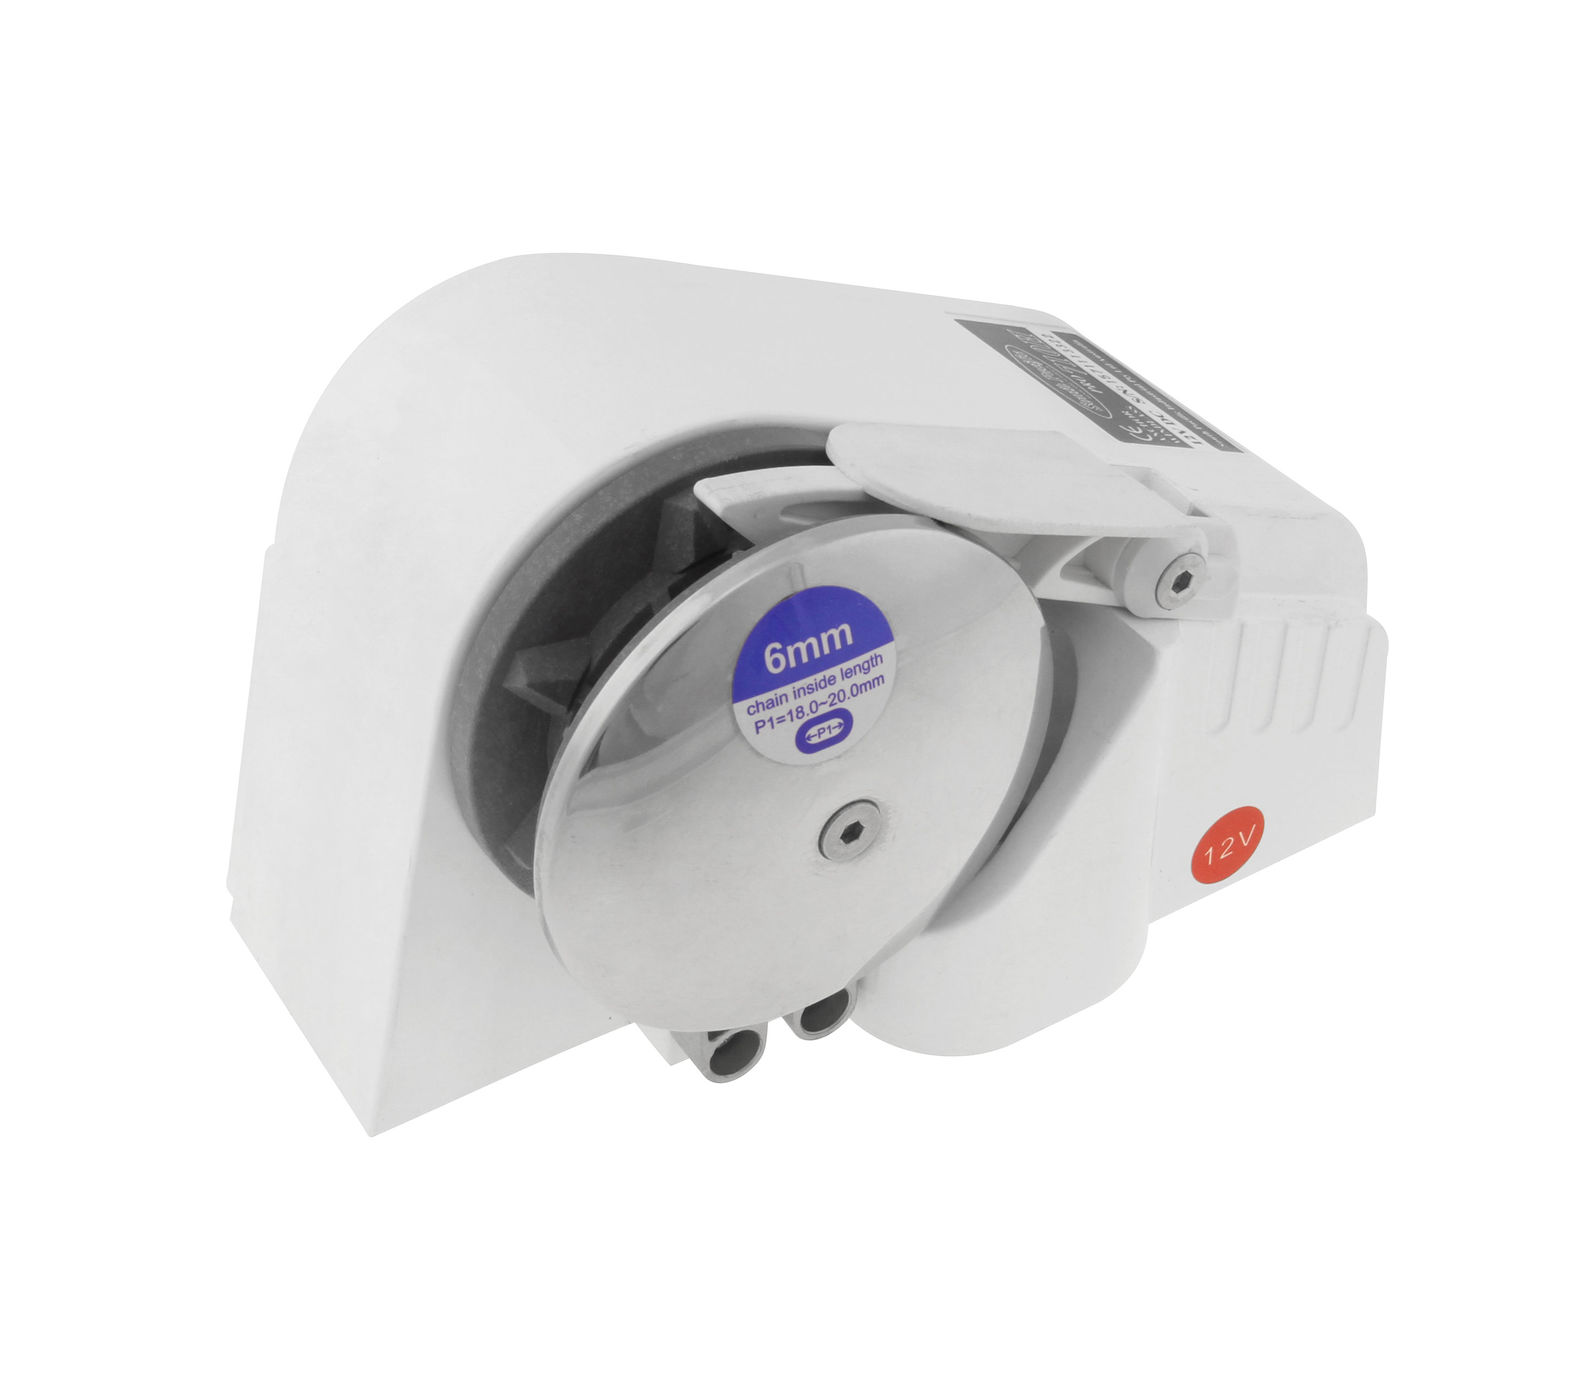 12 V 710H Winch For 4.5 M To 6 M Vessels Or Anchors Up To 7 Kg 7569710100 _